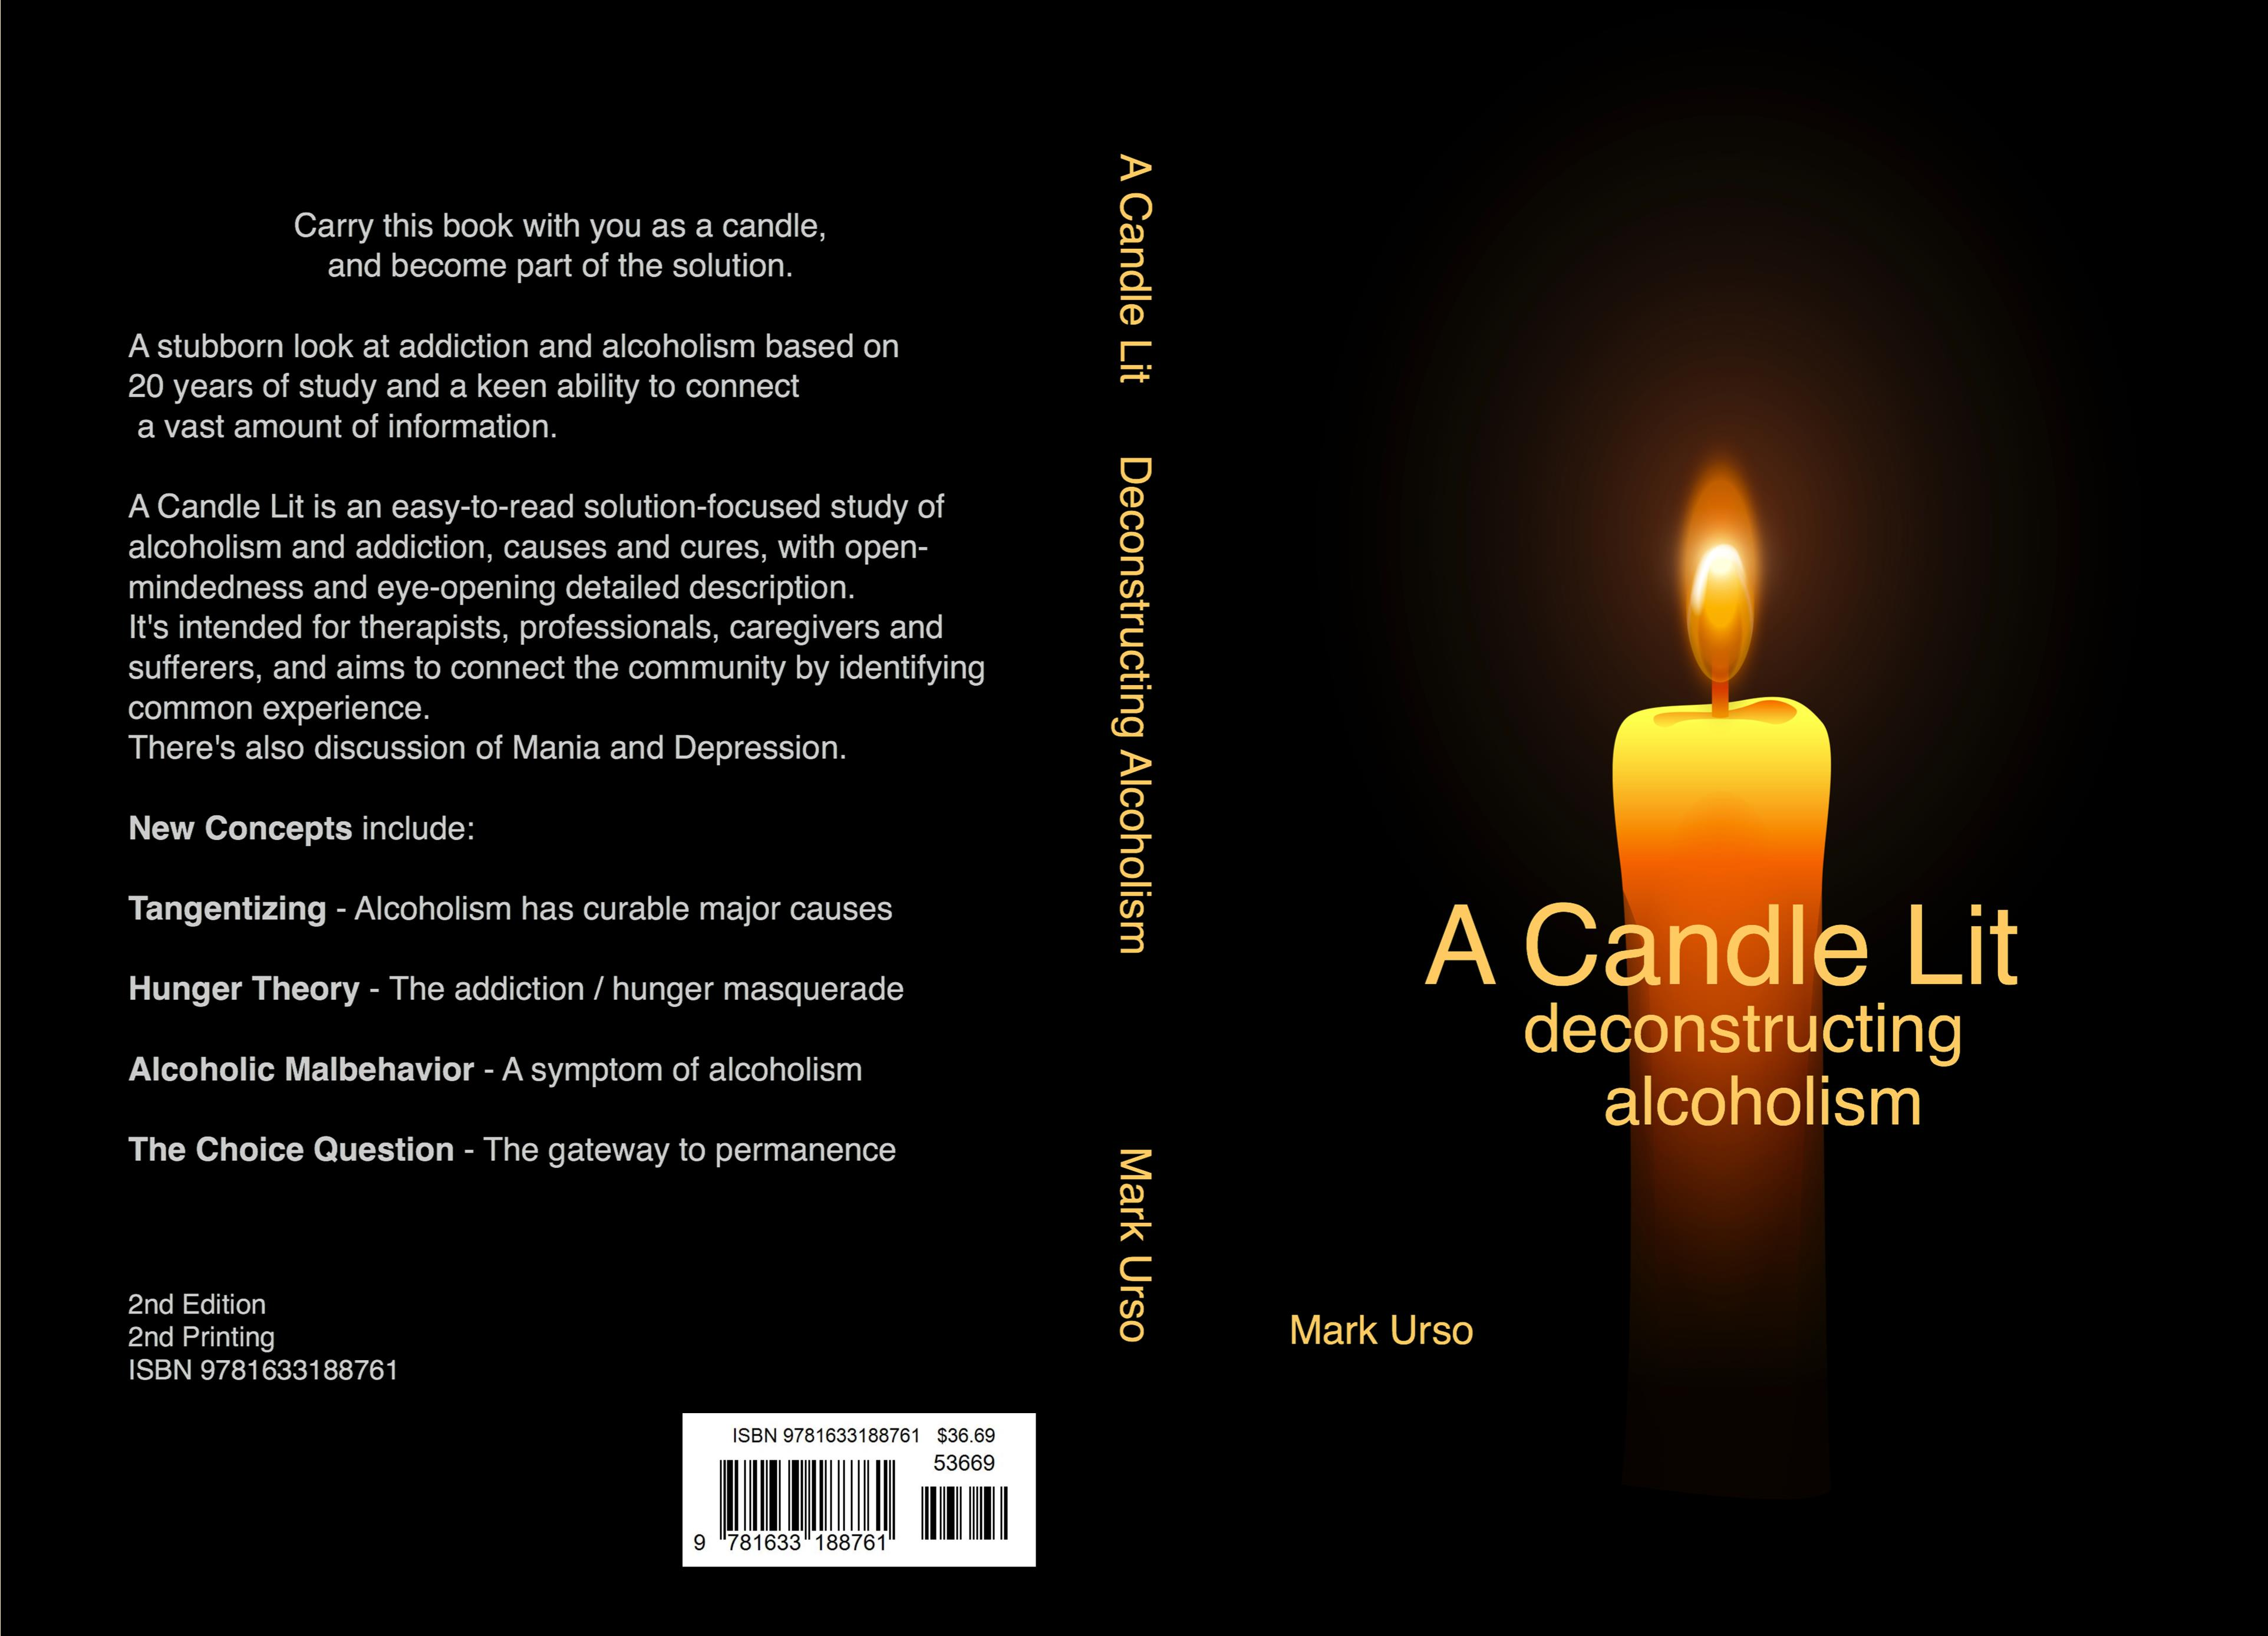 A Candle Lit, Deconstructing Alcoholism (2nd Ed) (2nd Print) cover image